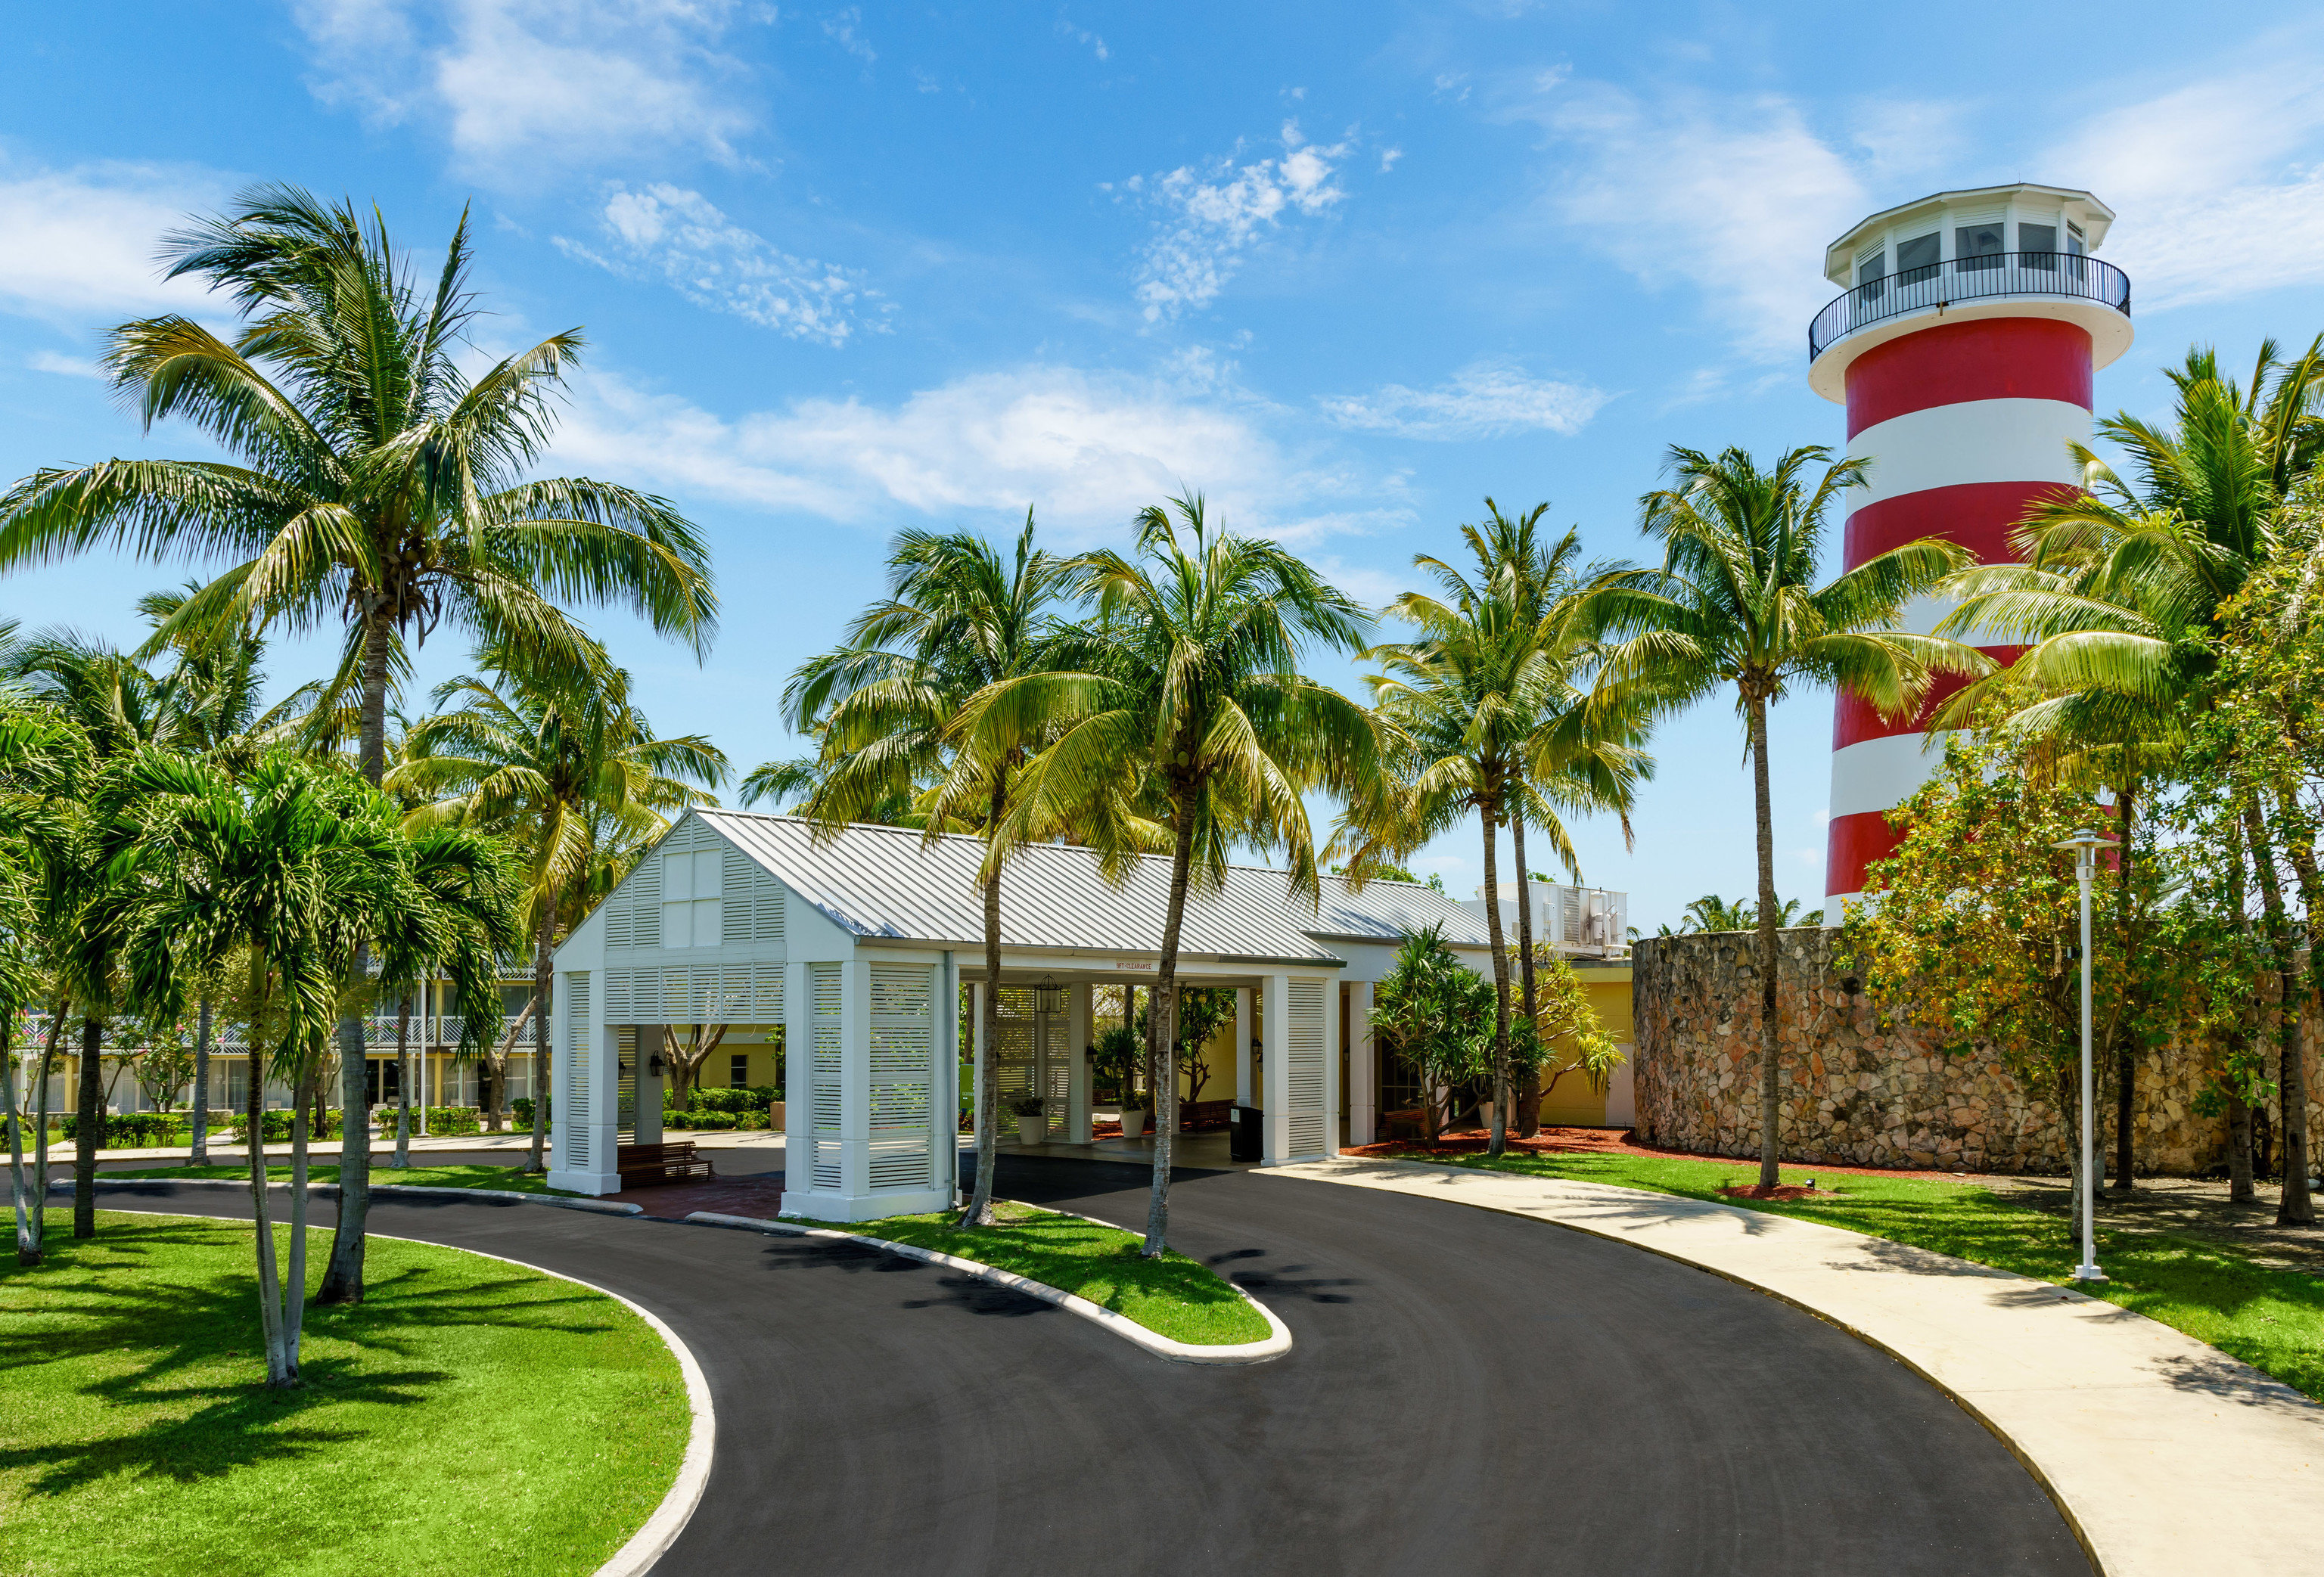 Hotels tree outdoor grass sky palm residential area neighbourhood estate vacation arecales home Resort walkway plant